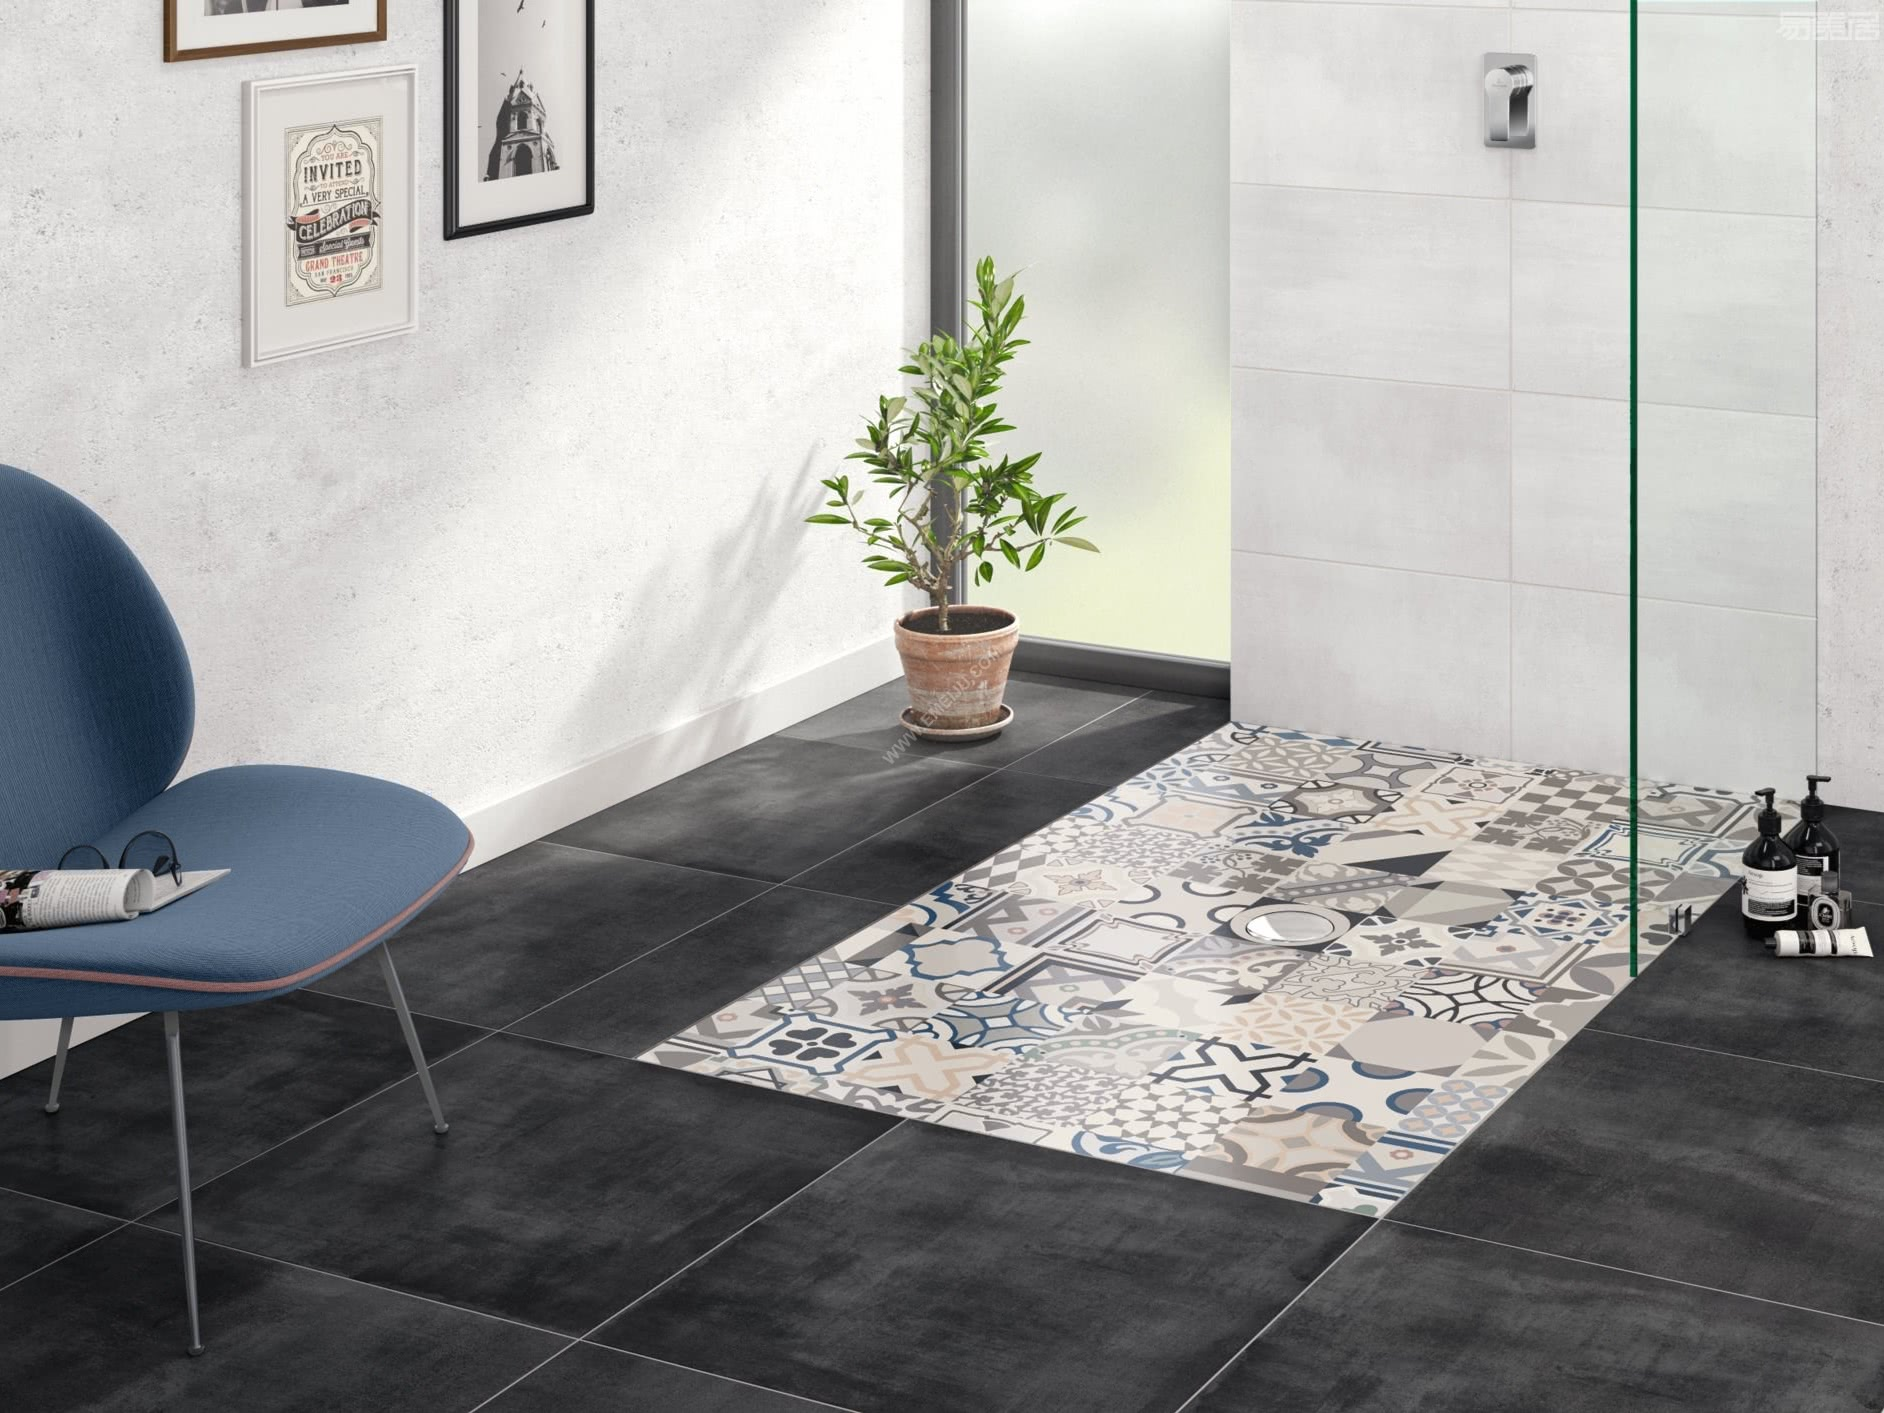 VIPRINT-Inspired-by-Heritage-Villeroy-Boch-334790-relcfc13bcf.jpg